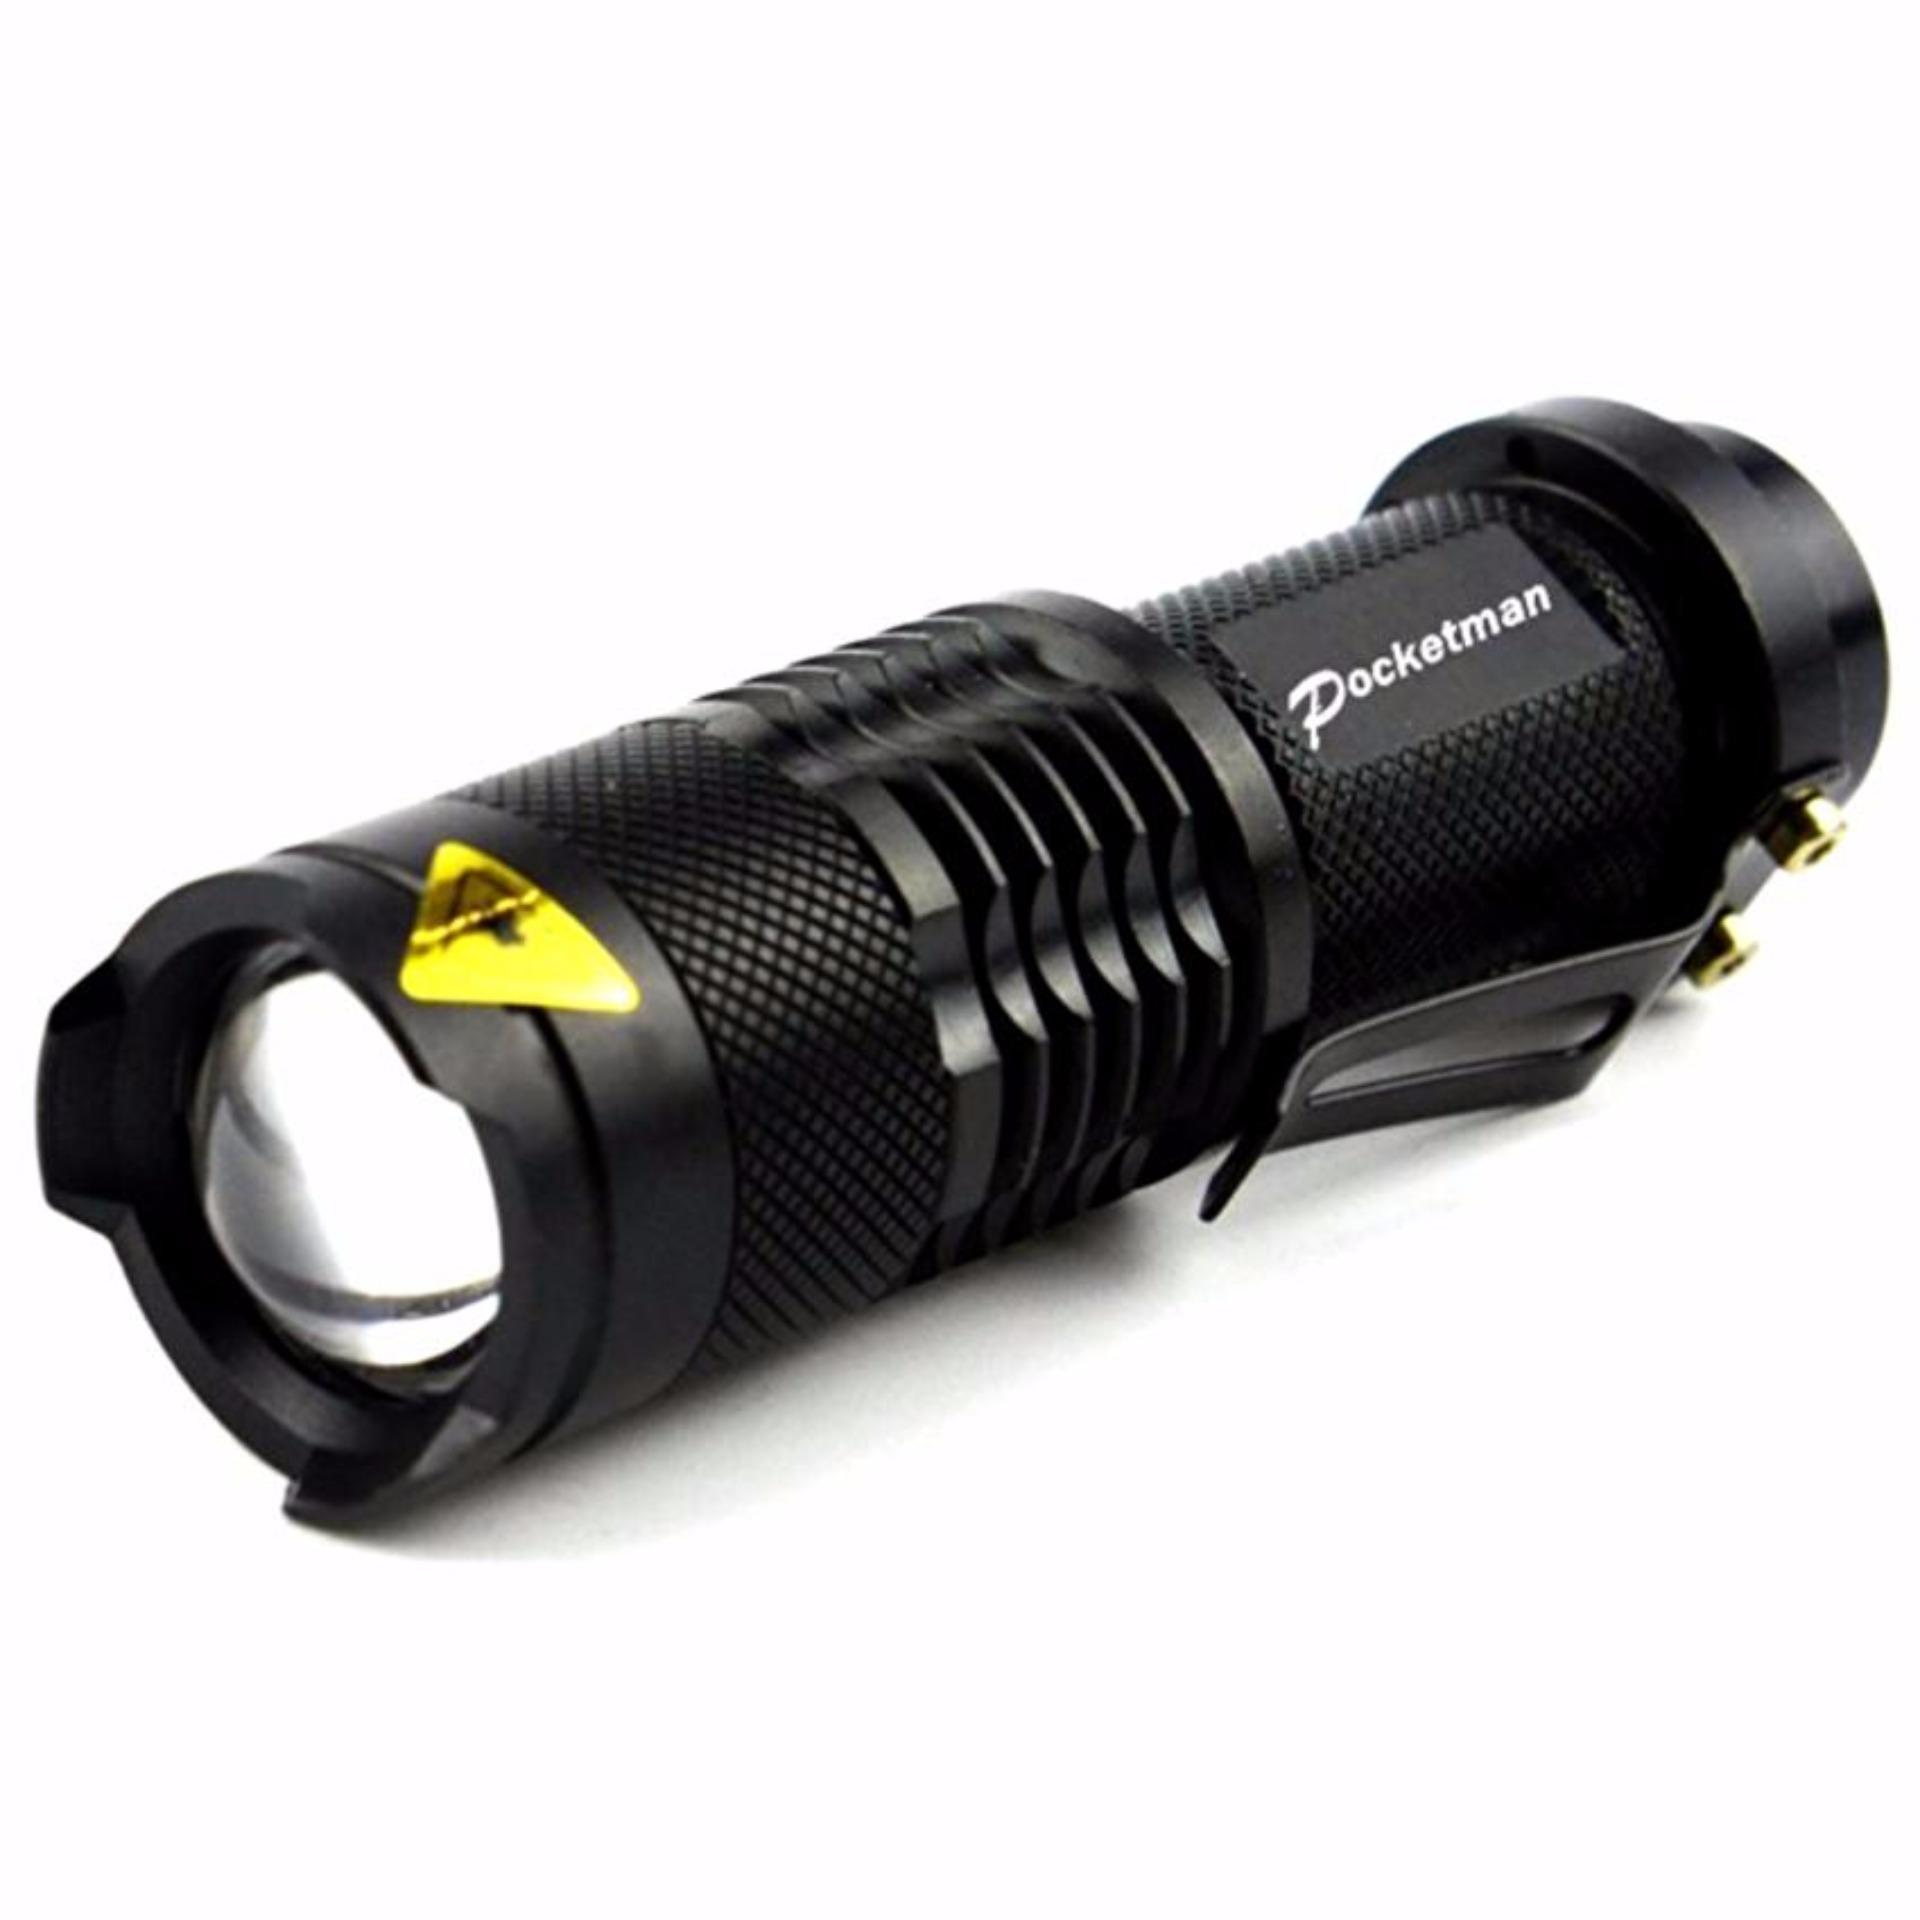 Pocketman Senter LED 2000 Lumens Waterproof Anti Air Emergency Darurat Flashlight 3 Modes Camping Hiking Outdoor Adventure Survival Police Mini with Hanging Cilp Laser Tahan Air Mudah Dibawa Kecil Small Size Penerangan Pencahayaan Light Cahaya - Hitam